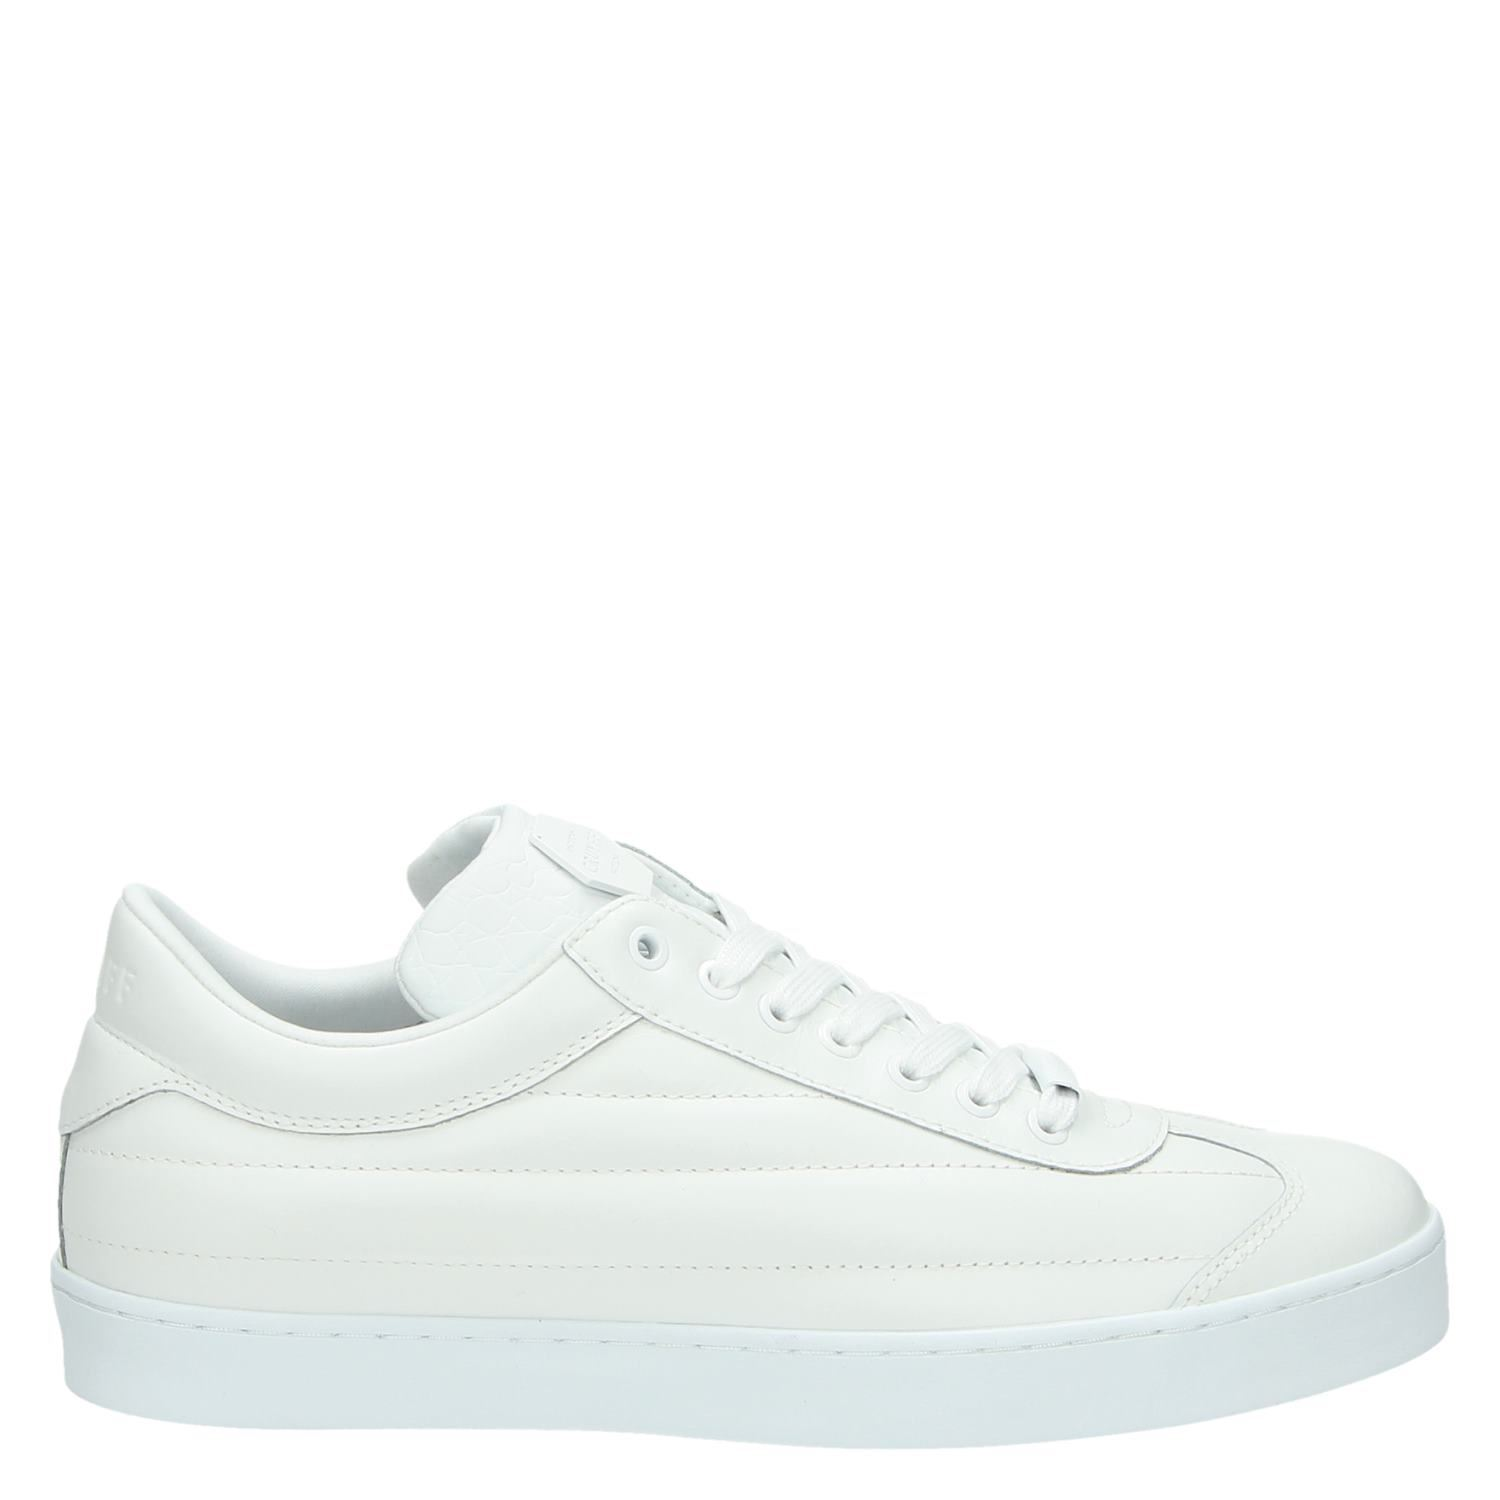 Rebel Wit Sneakers Cruyff Heren Lage gnwSx414Zq